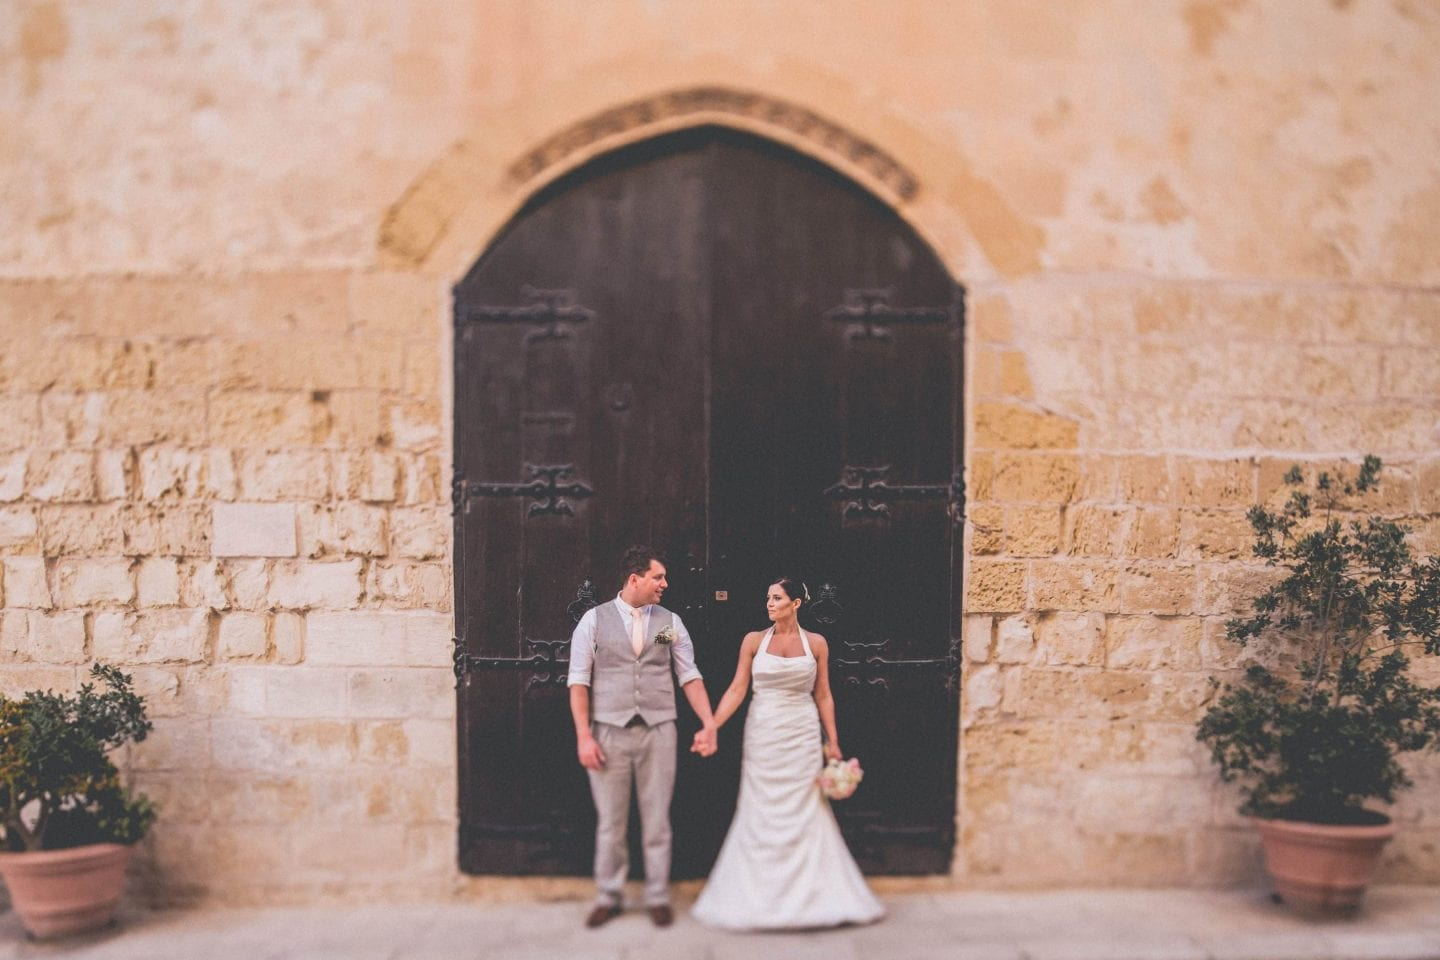 intimate wedding photographer malta